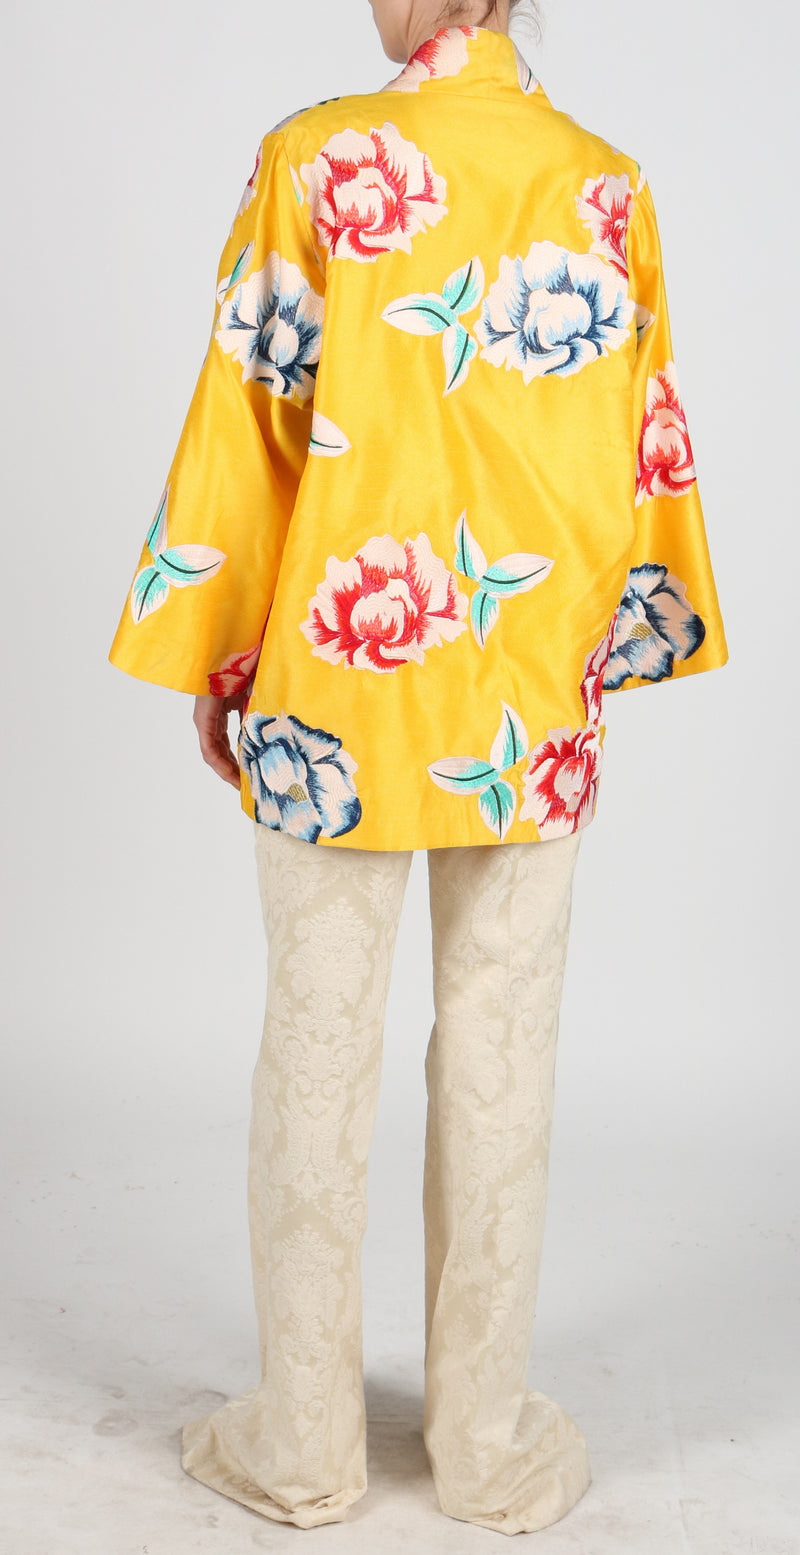 Fanm Mon JAUNE Vyshyvanka Jacket Dress Embroidered Yellow Multi Floral Color Coat